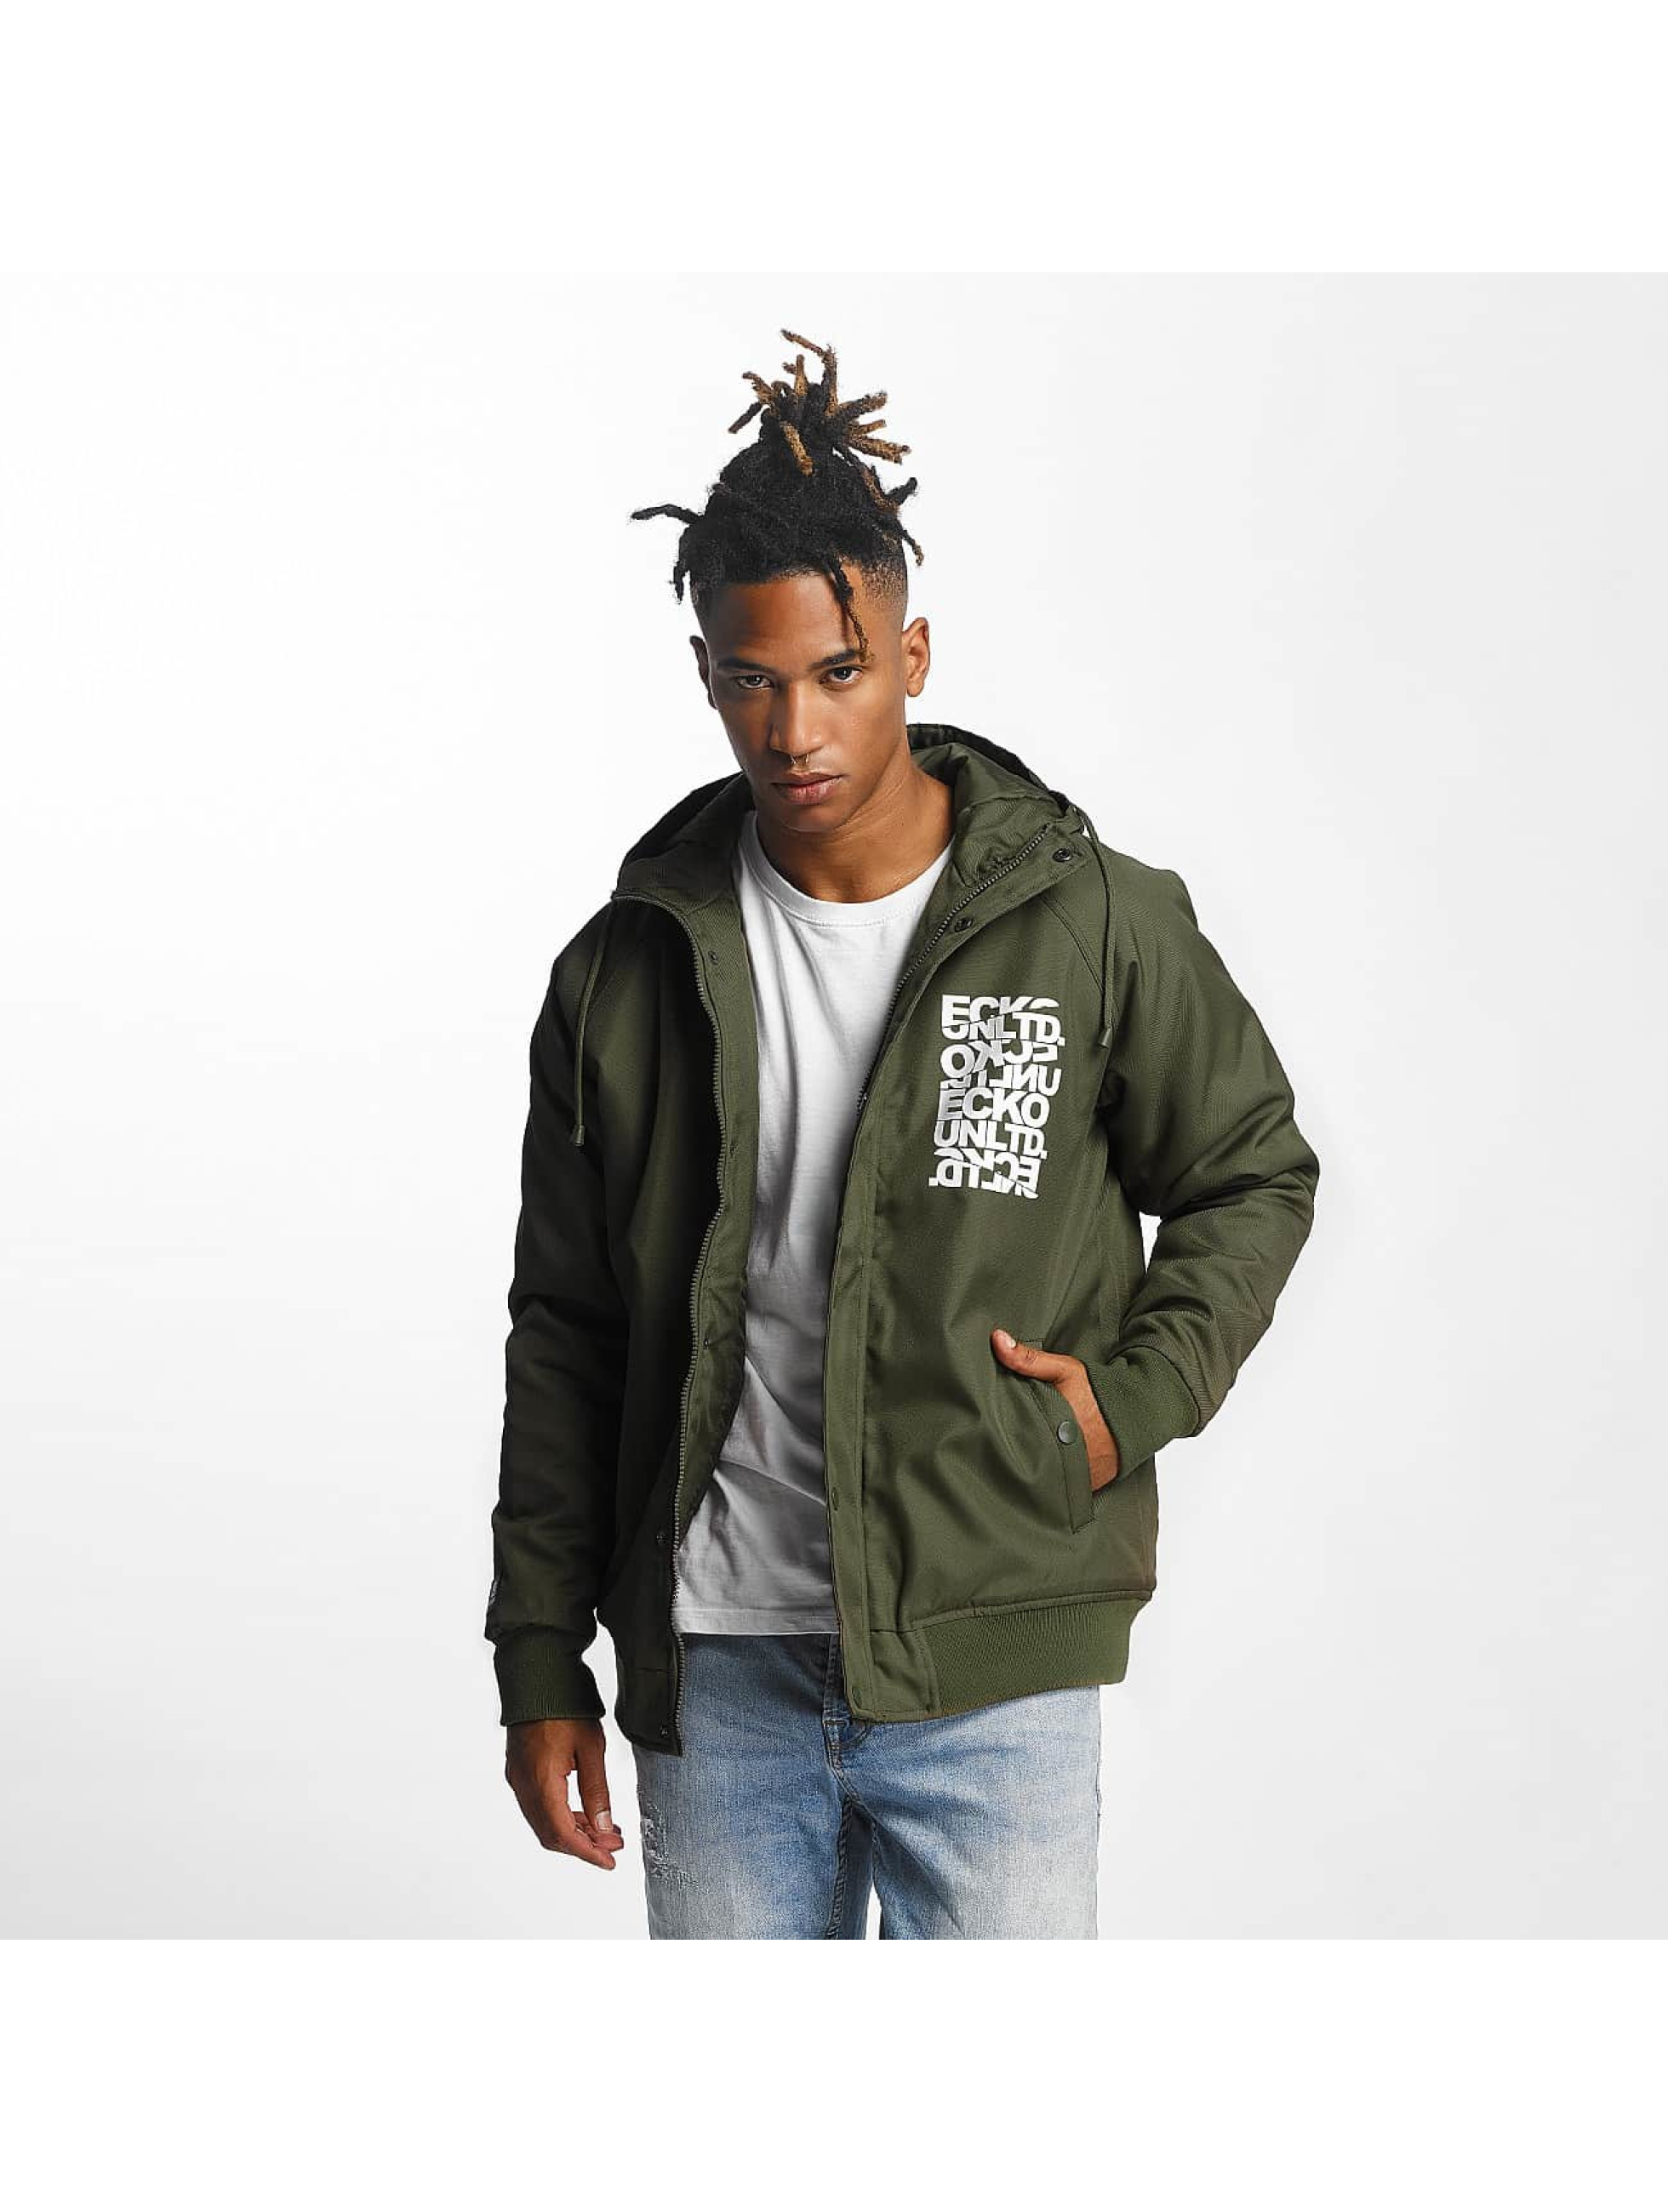 Ecko Unltd. / Winter Jacket Anorak in olive L